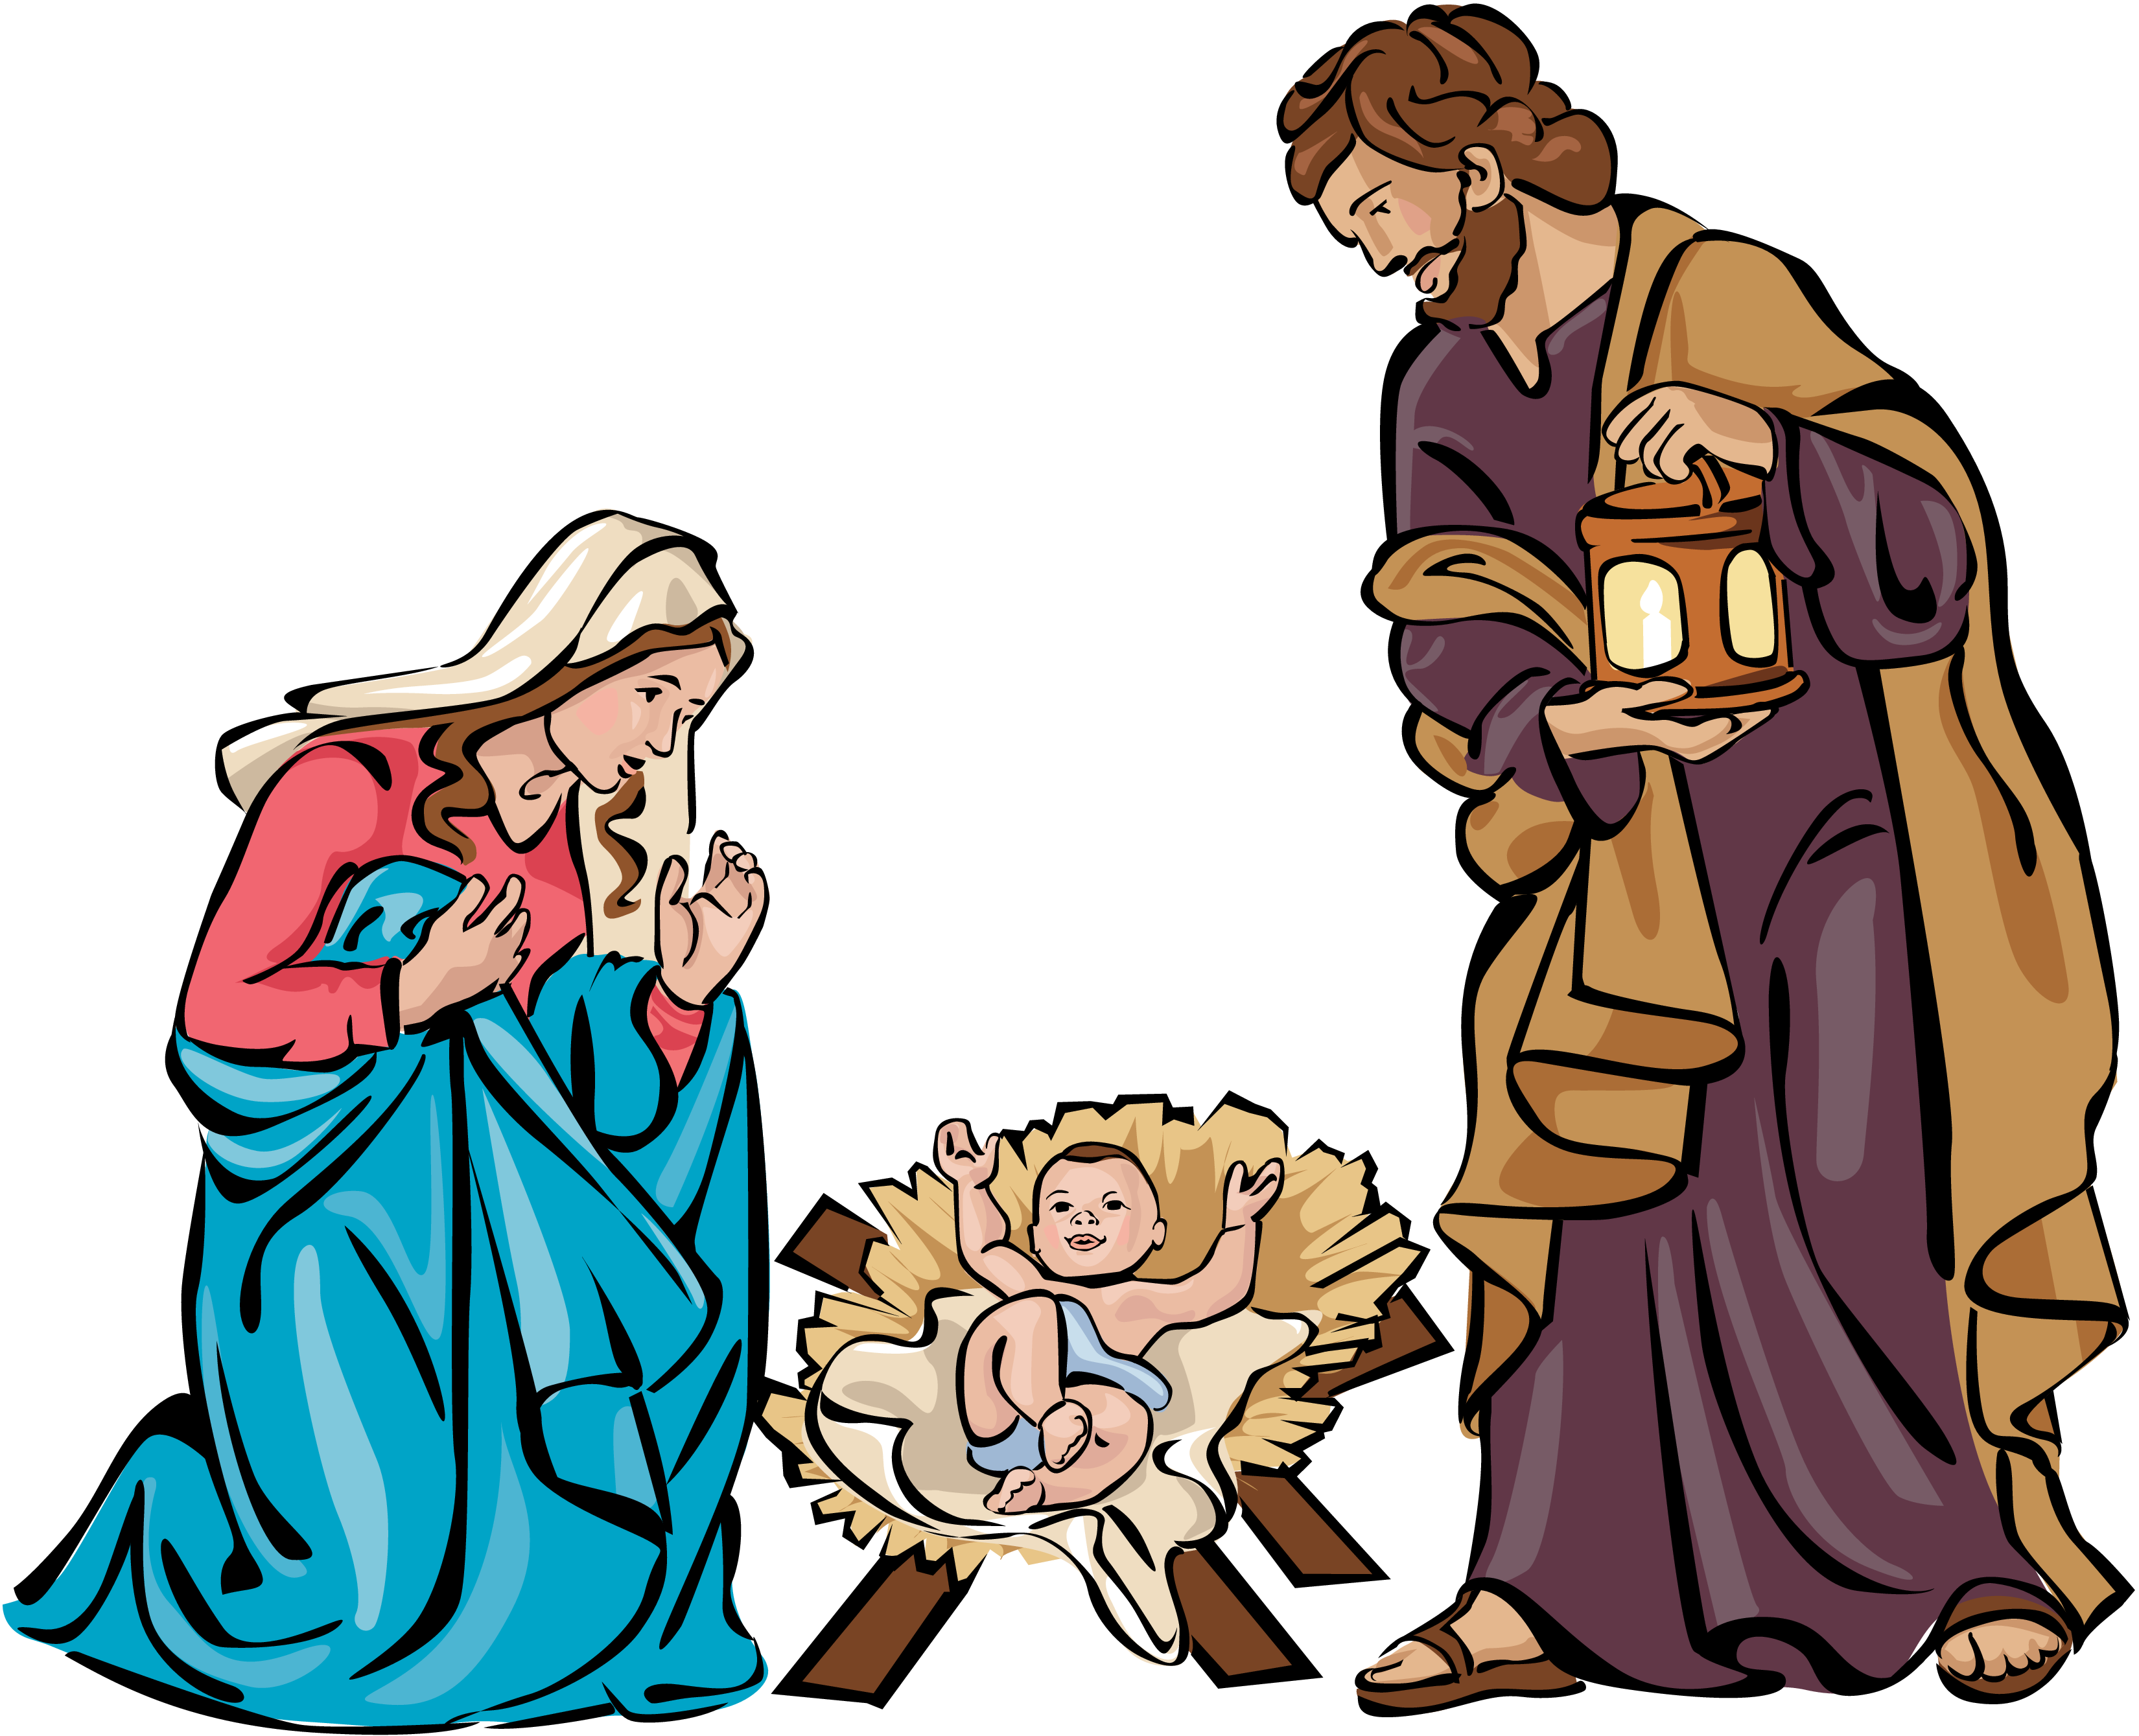 christmas holy family clip art churches religious rh pinterest com holy family clipart black and white